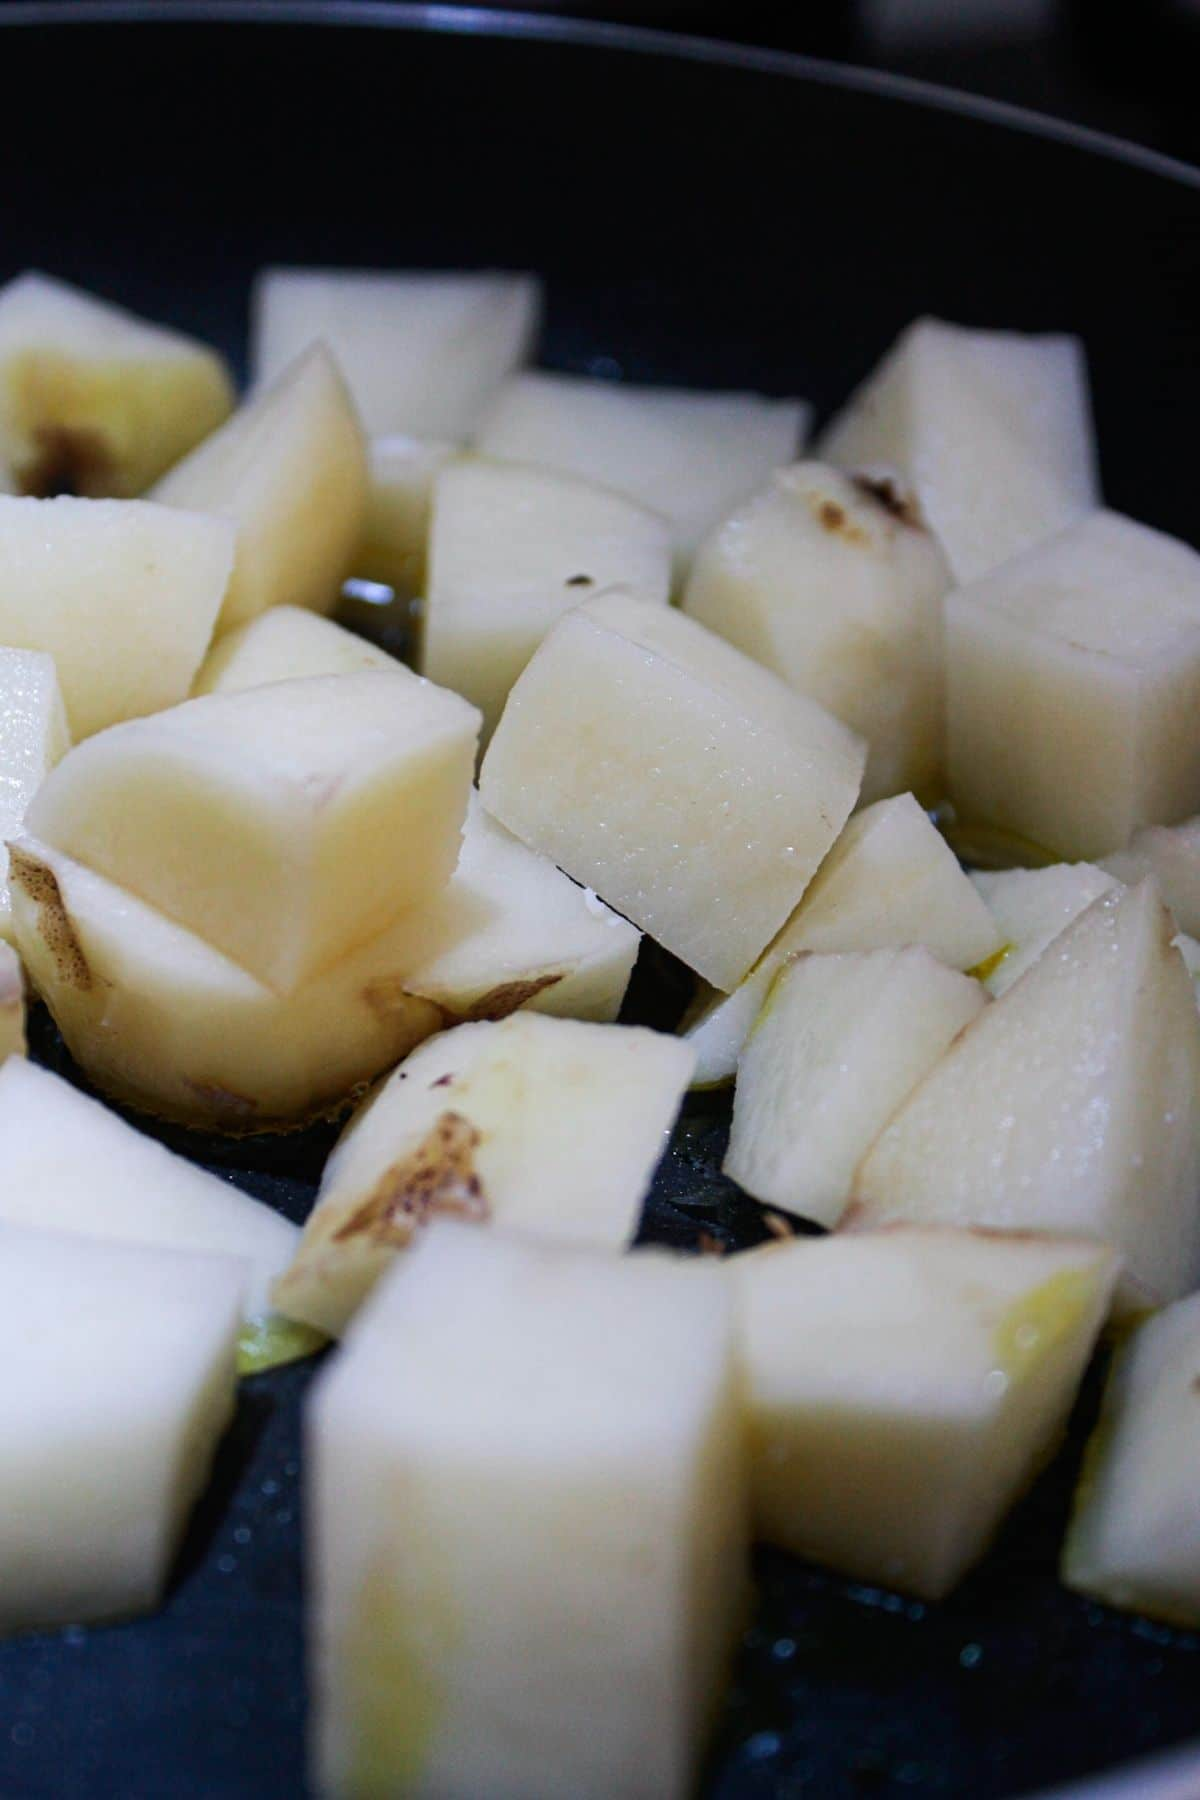 Diced potatoes in skillet